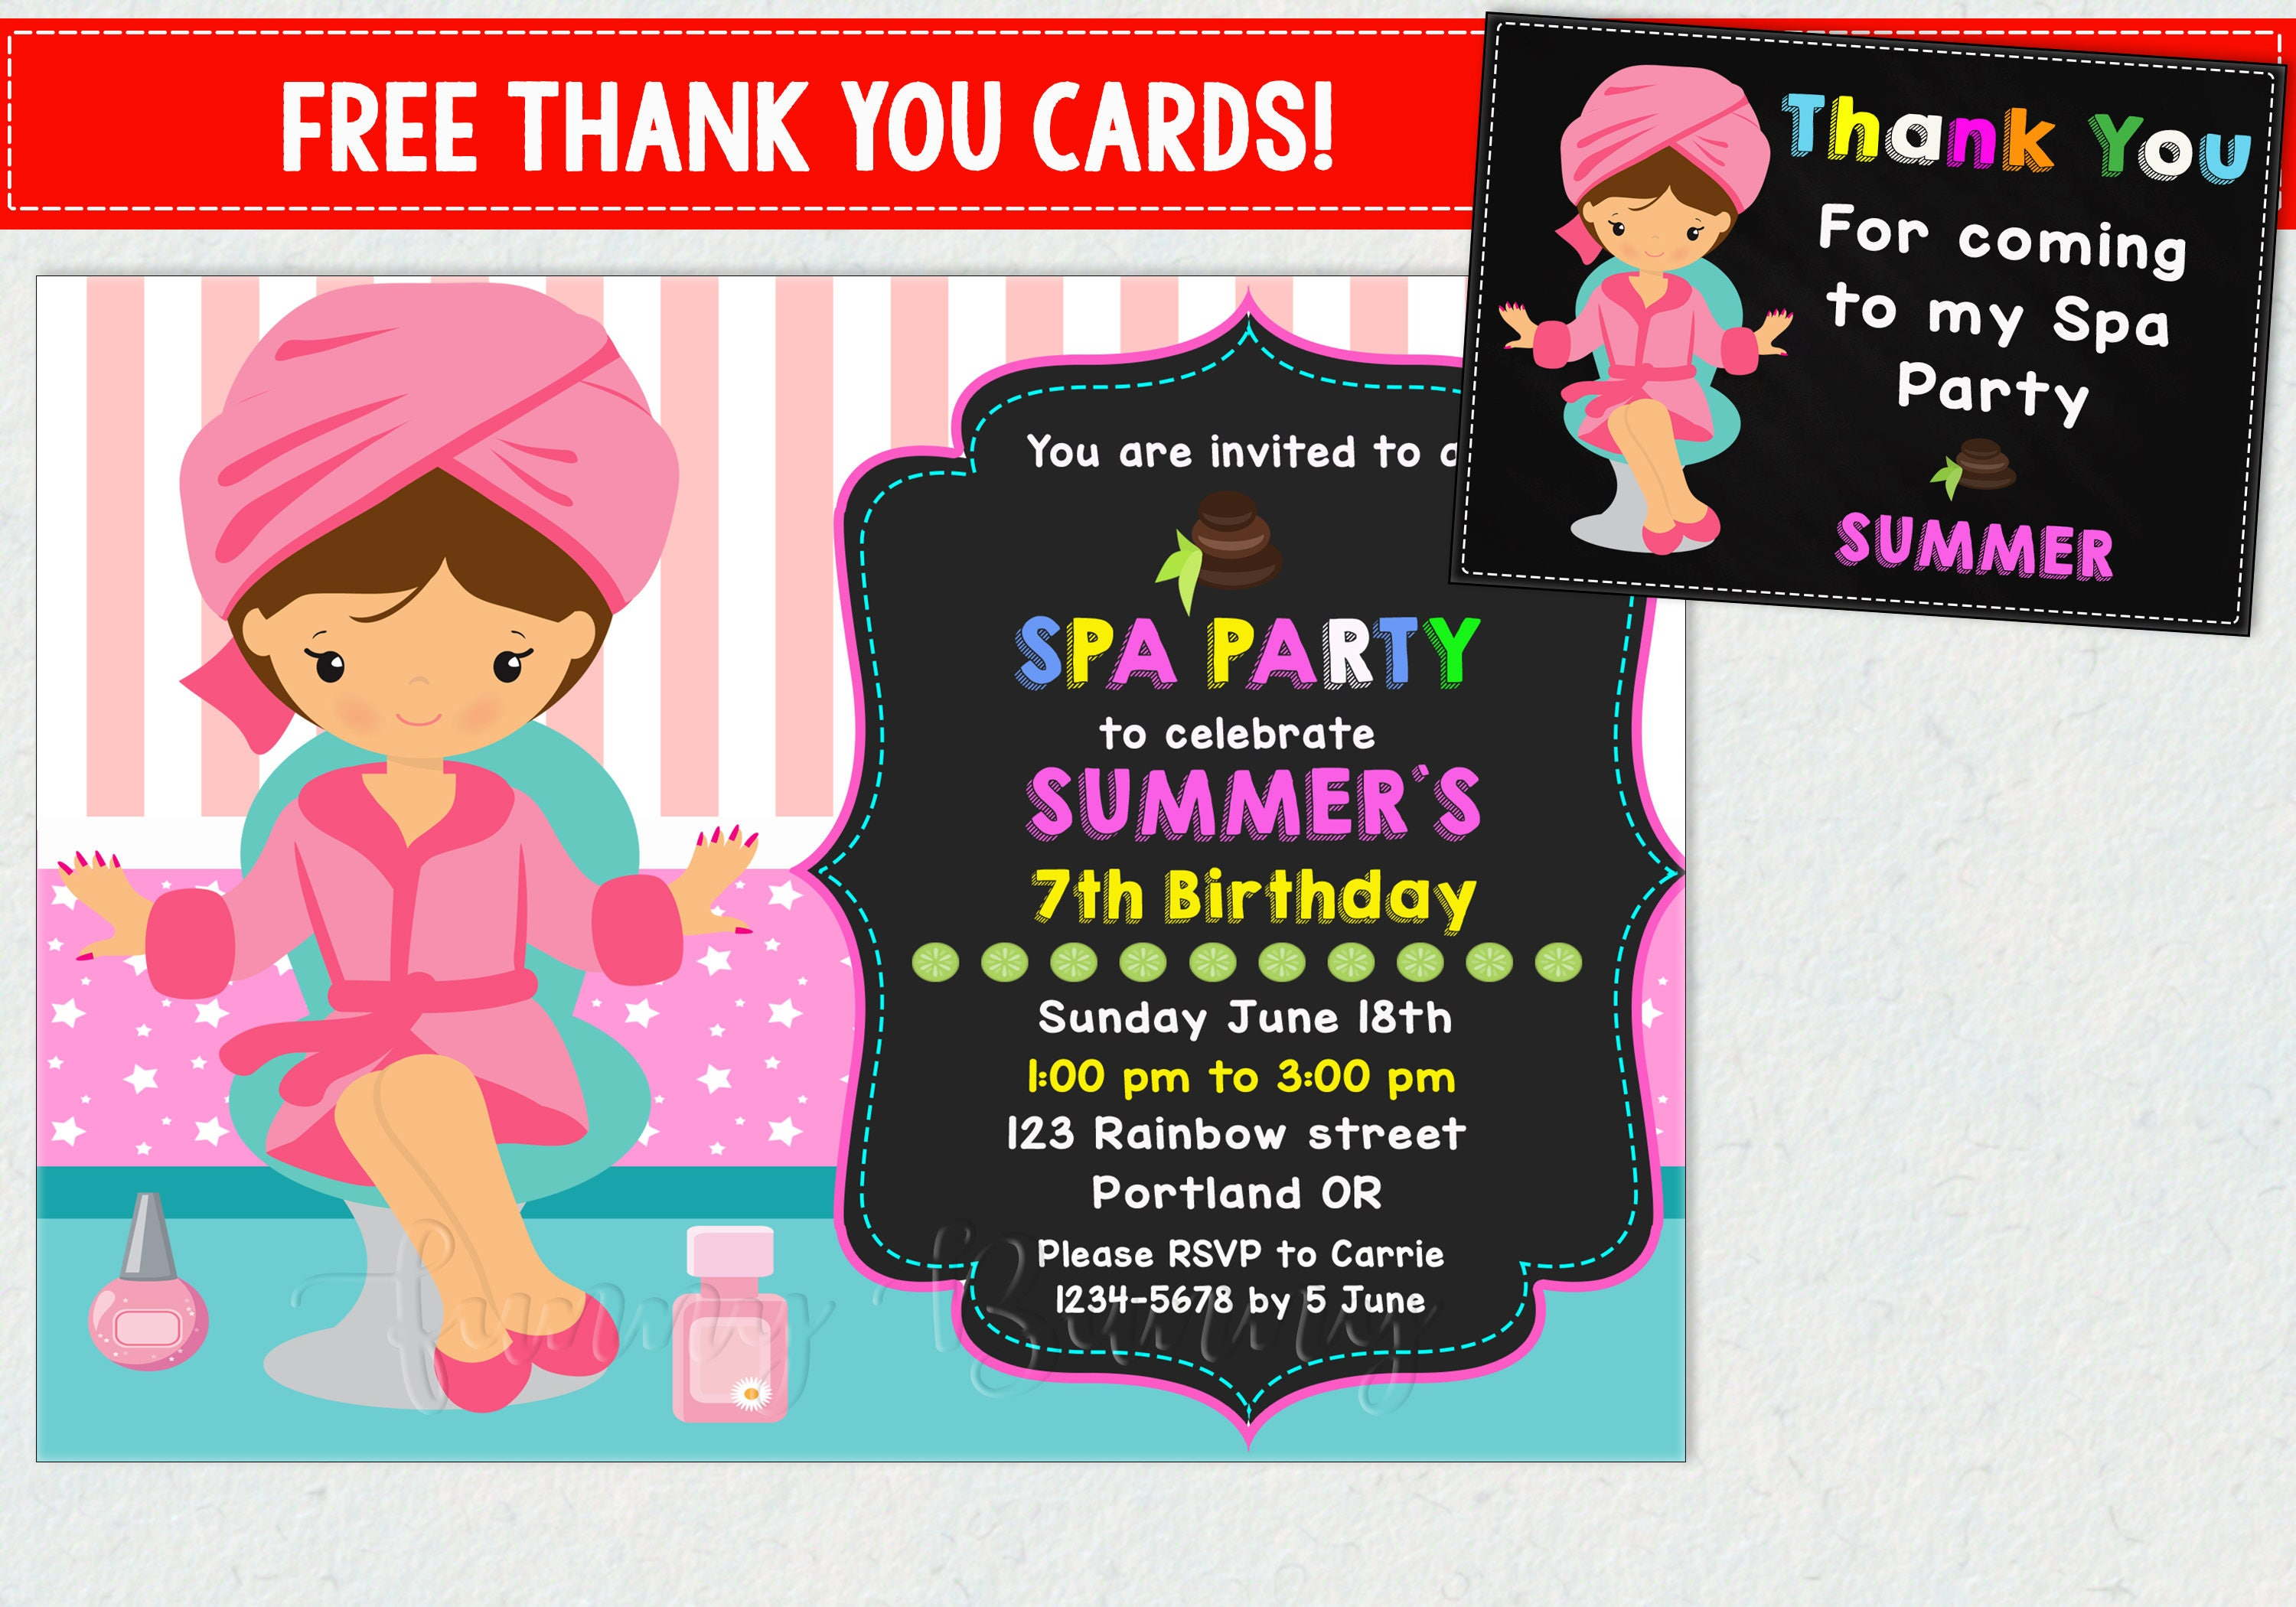 Spa party birthday invitation for girls thank you spa party zoom monicamarmolfo Images